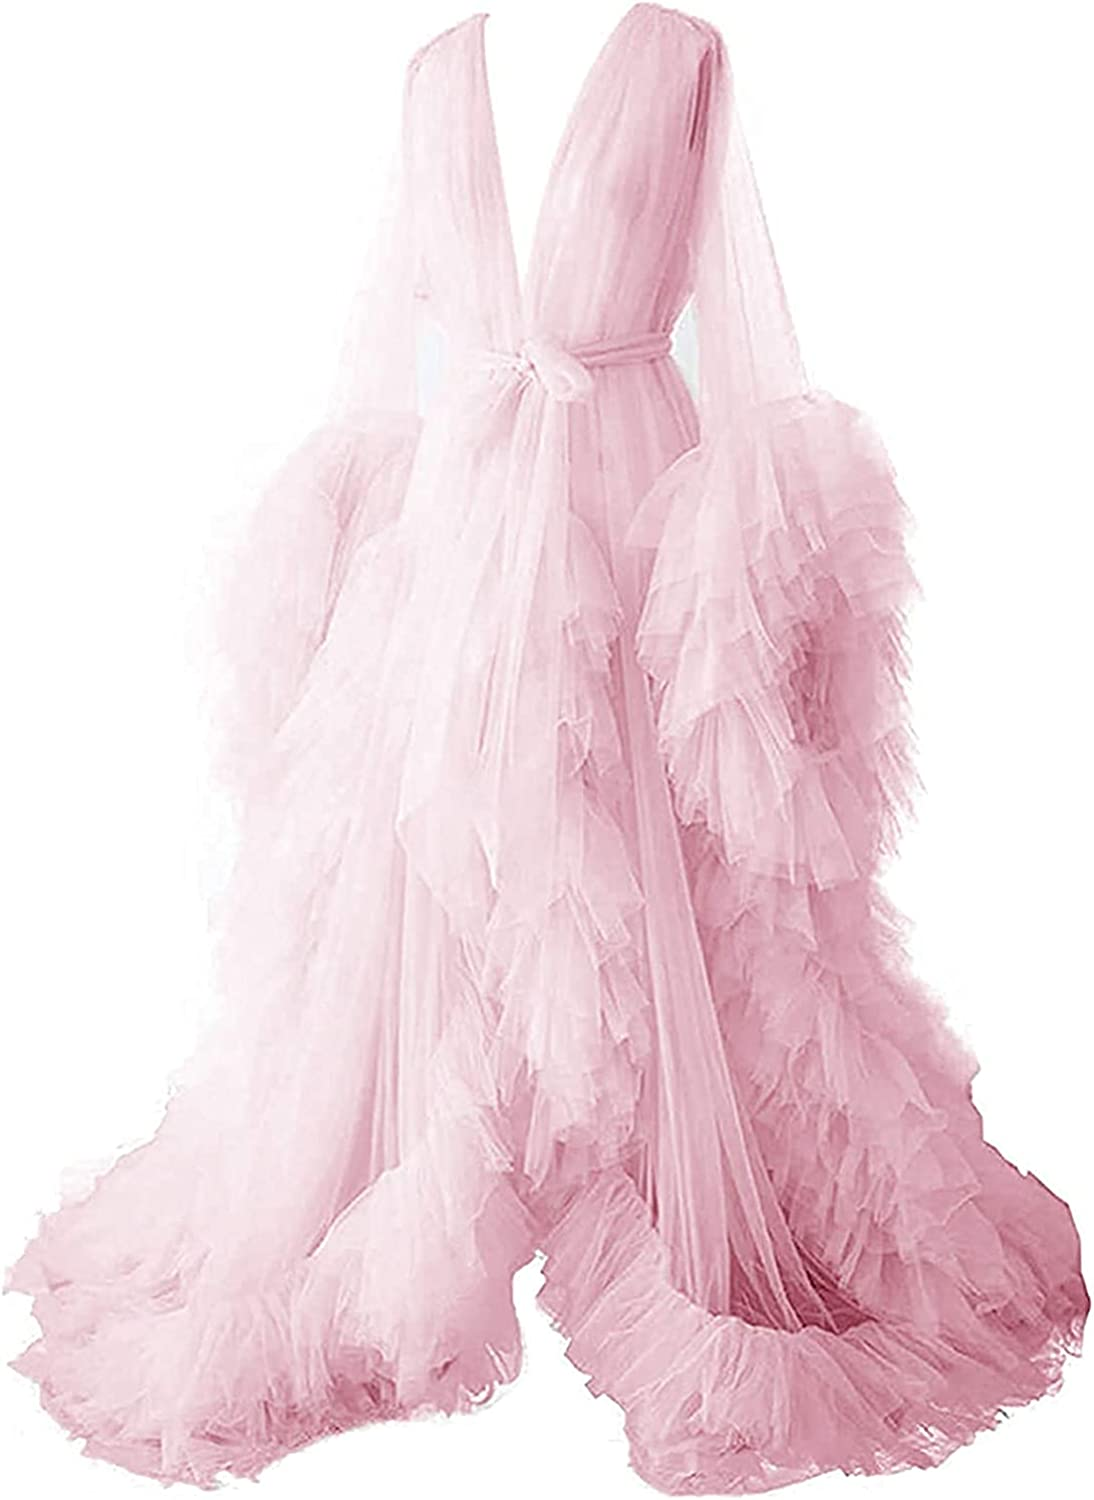 Women's Tulle Max 42% OFF Robe Shoot Wearing a See-Through of Selling rankings Lon